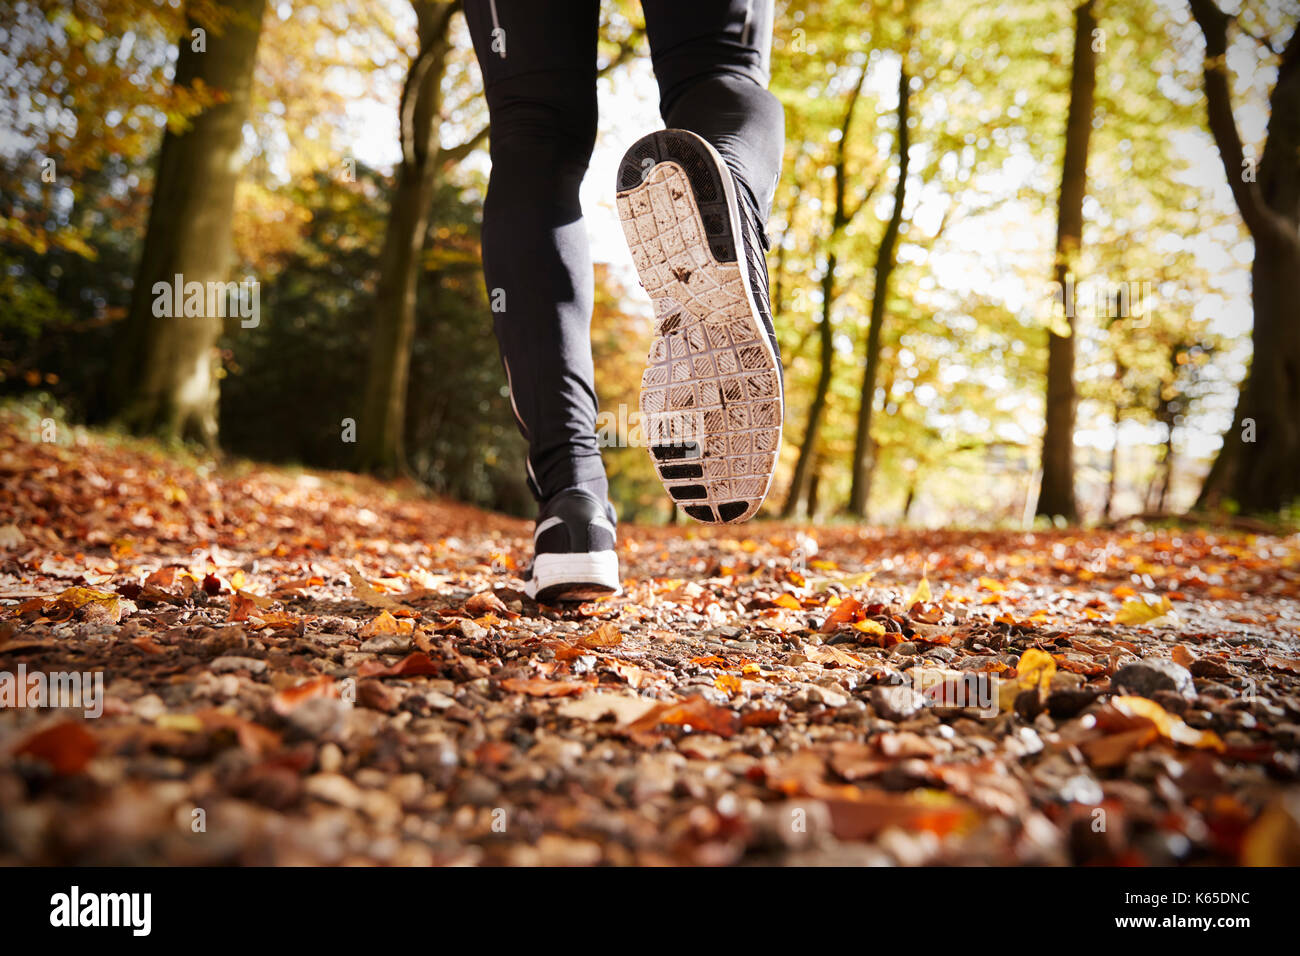 Close Up Of Male Runners Feet On Run Through Autumn Landscape - Stock Image